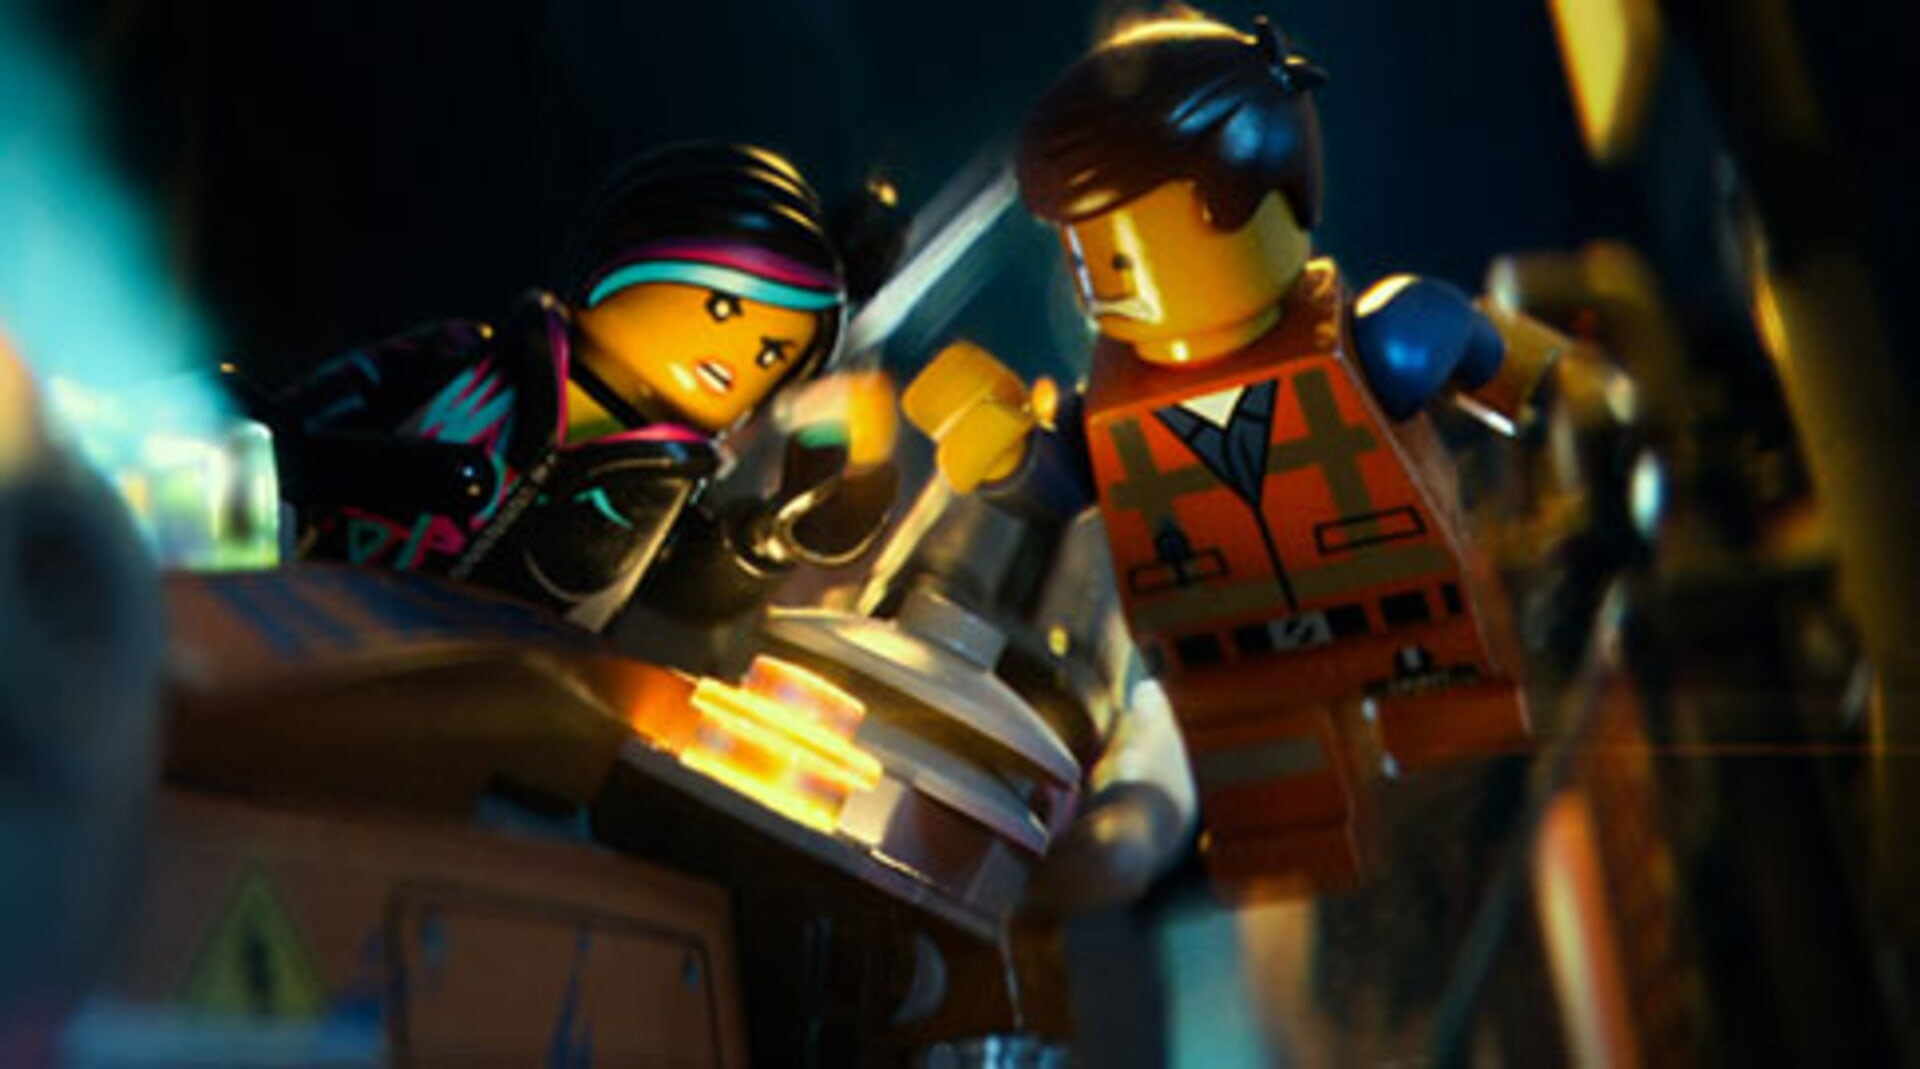 The Lego Movie - Image 33